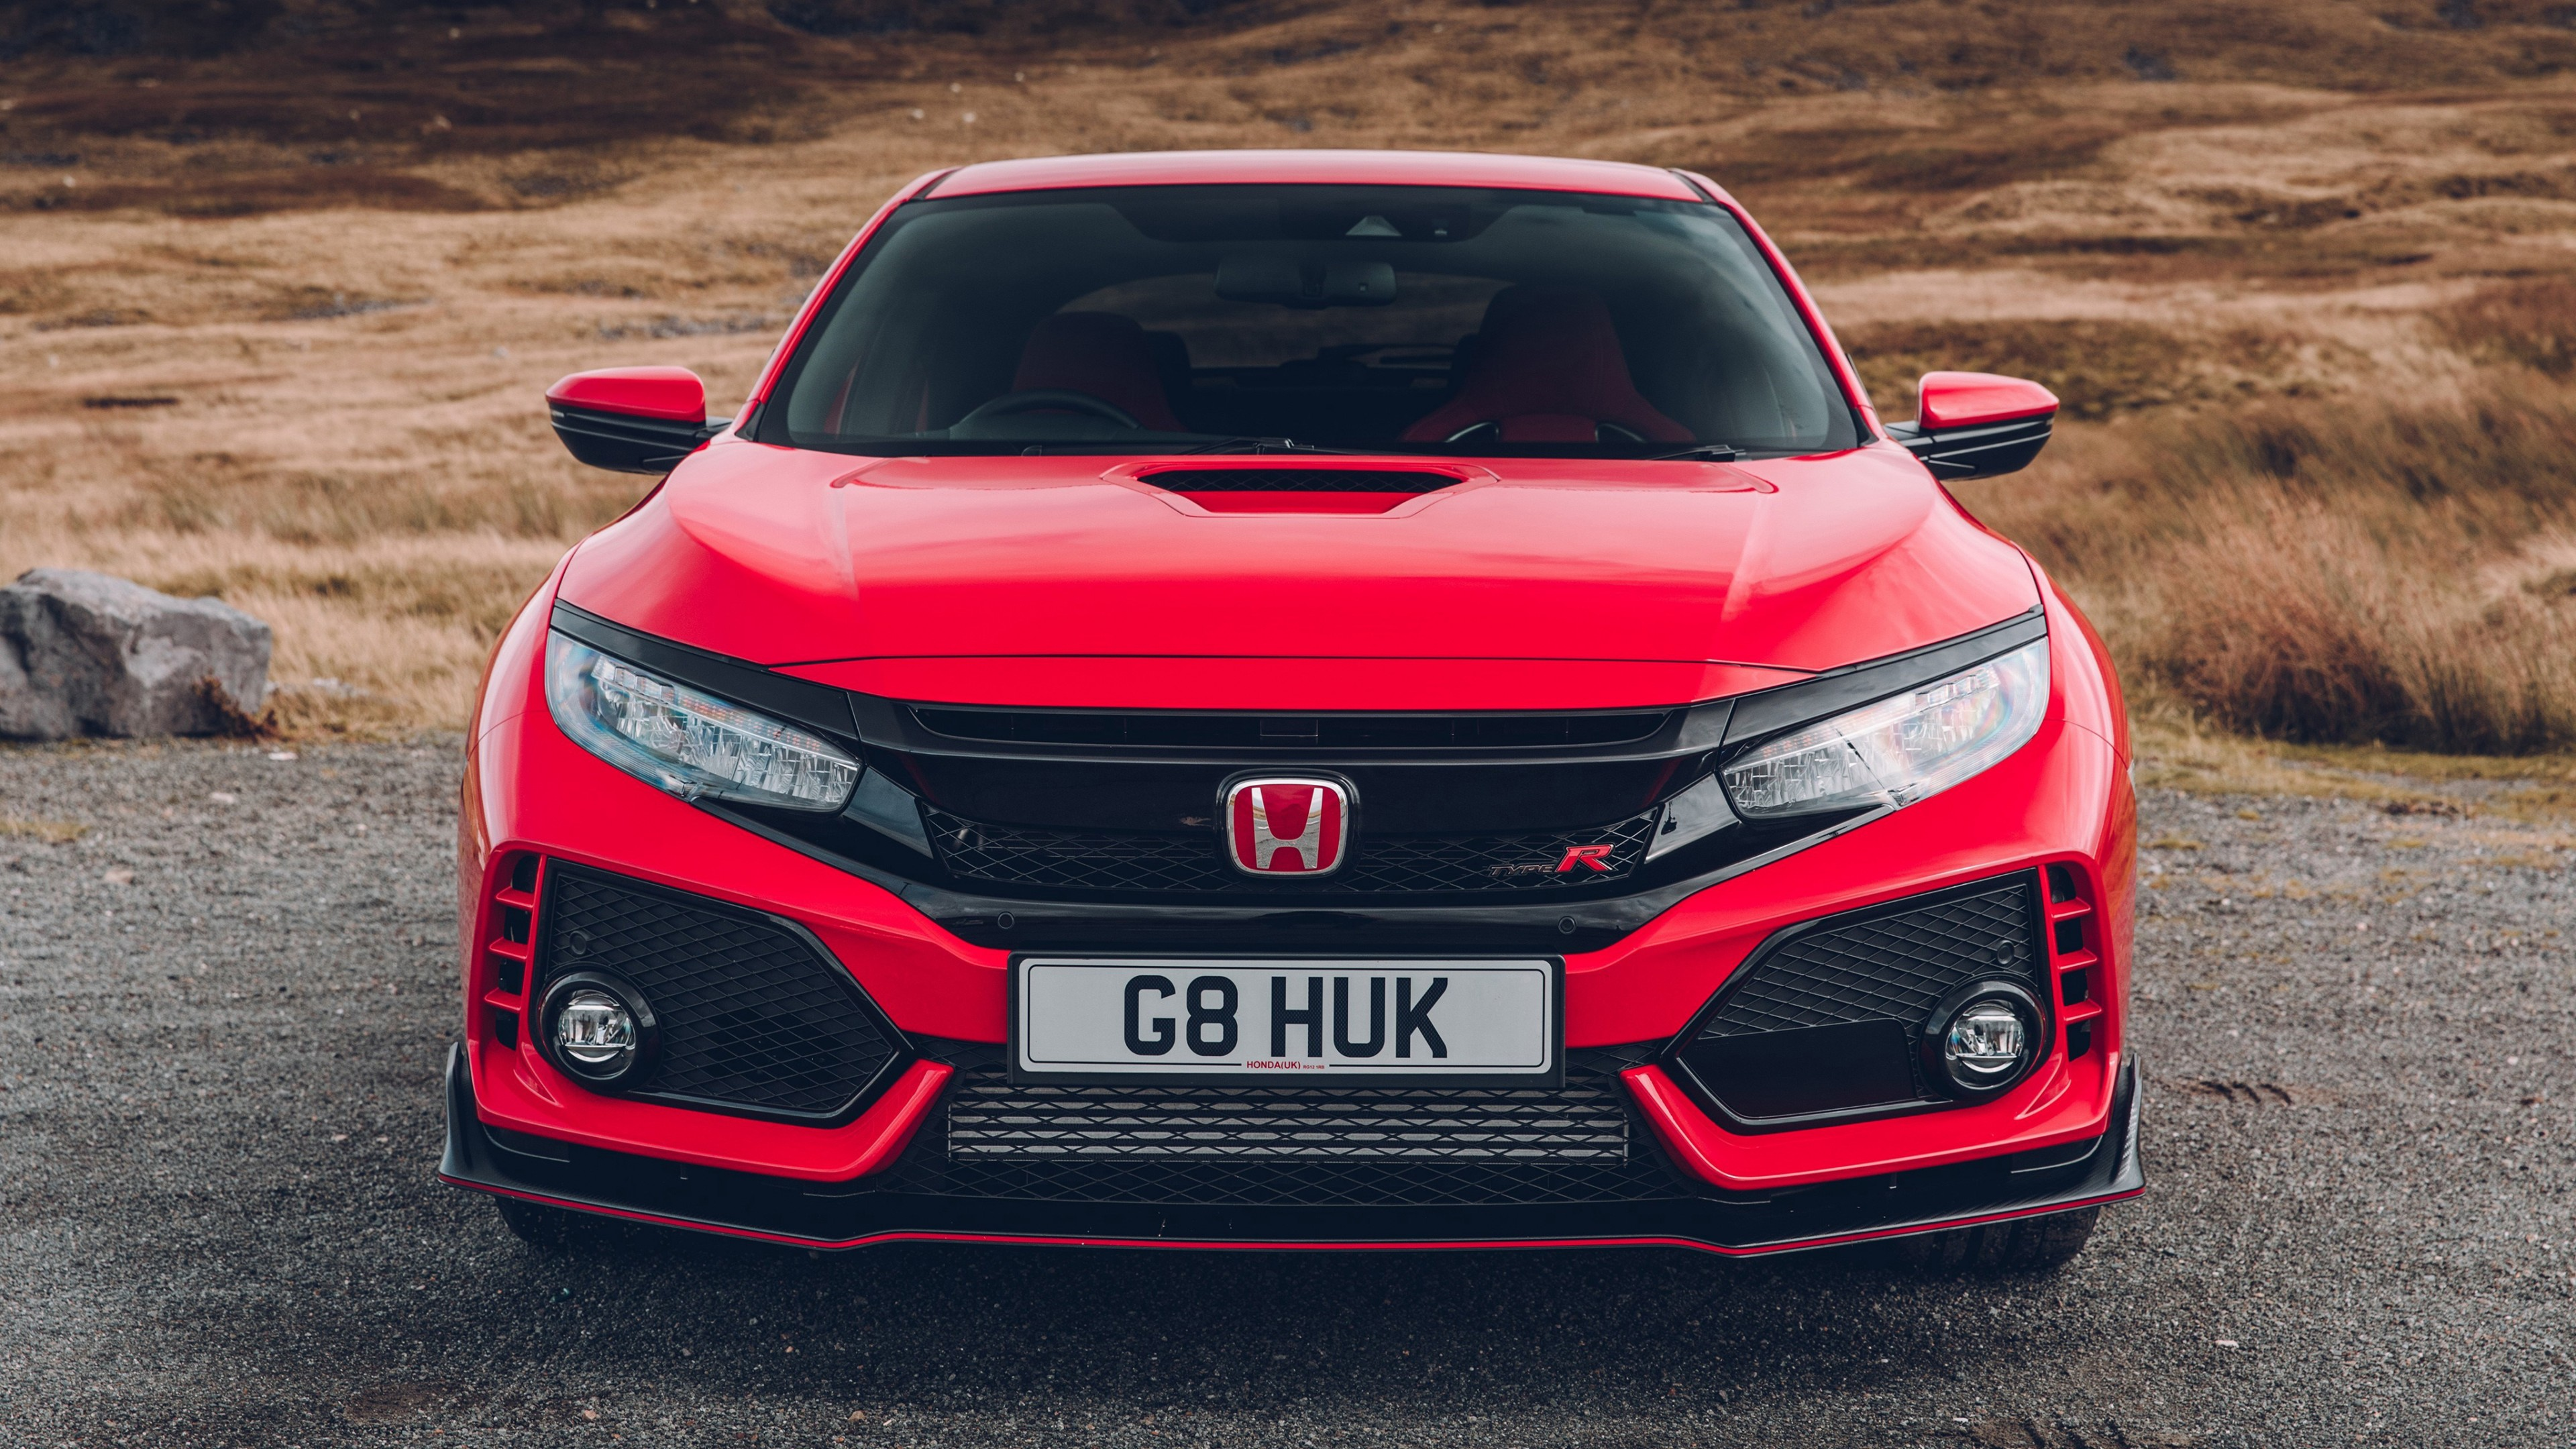 Honda Civic Type R 2017 4K Wallpaper